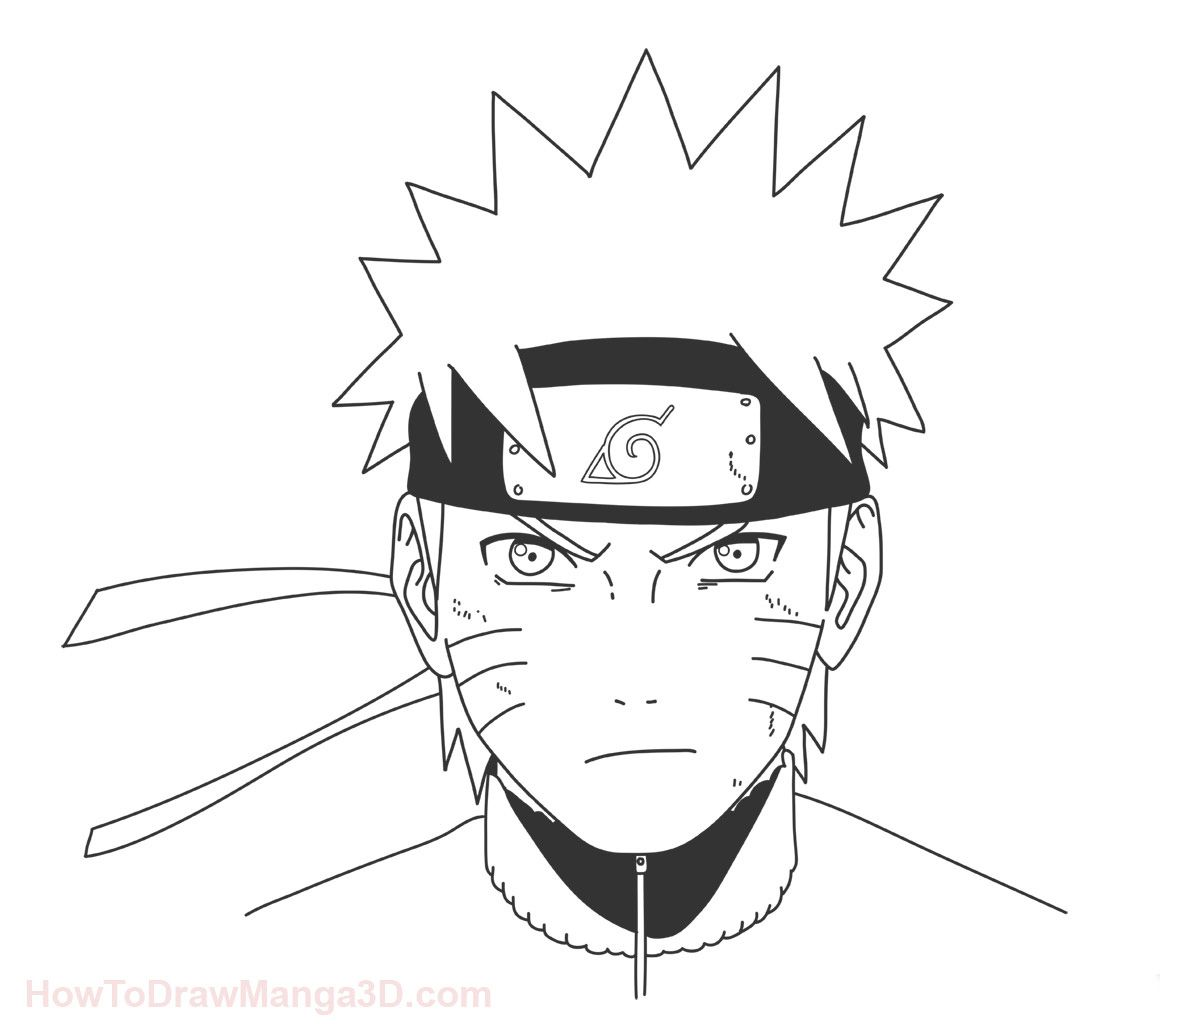 Lets learn how to draw naruto step by step from naruto today naruto uzumaki うずまきナルト uzumaki naruto is a shinobi of konohagakure